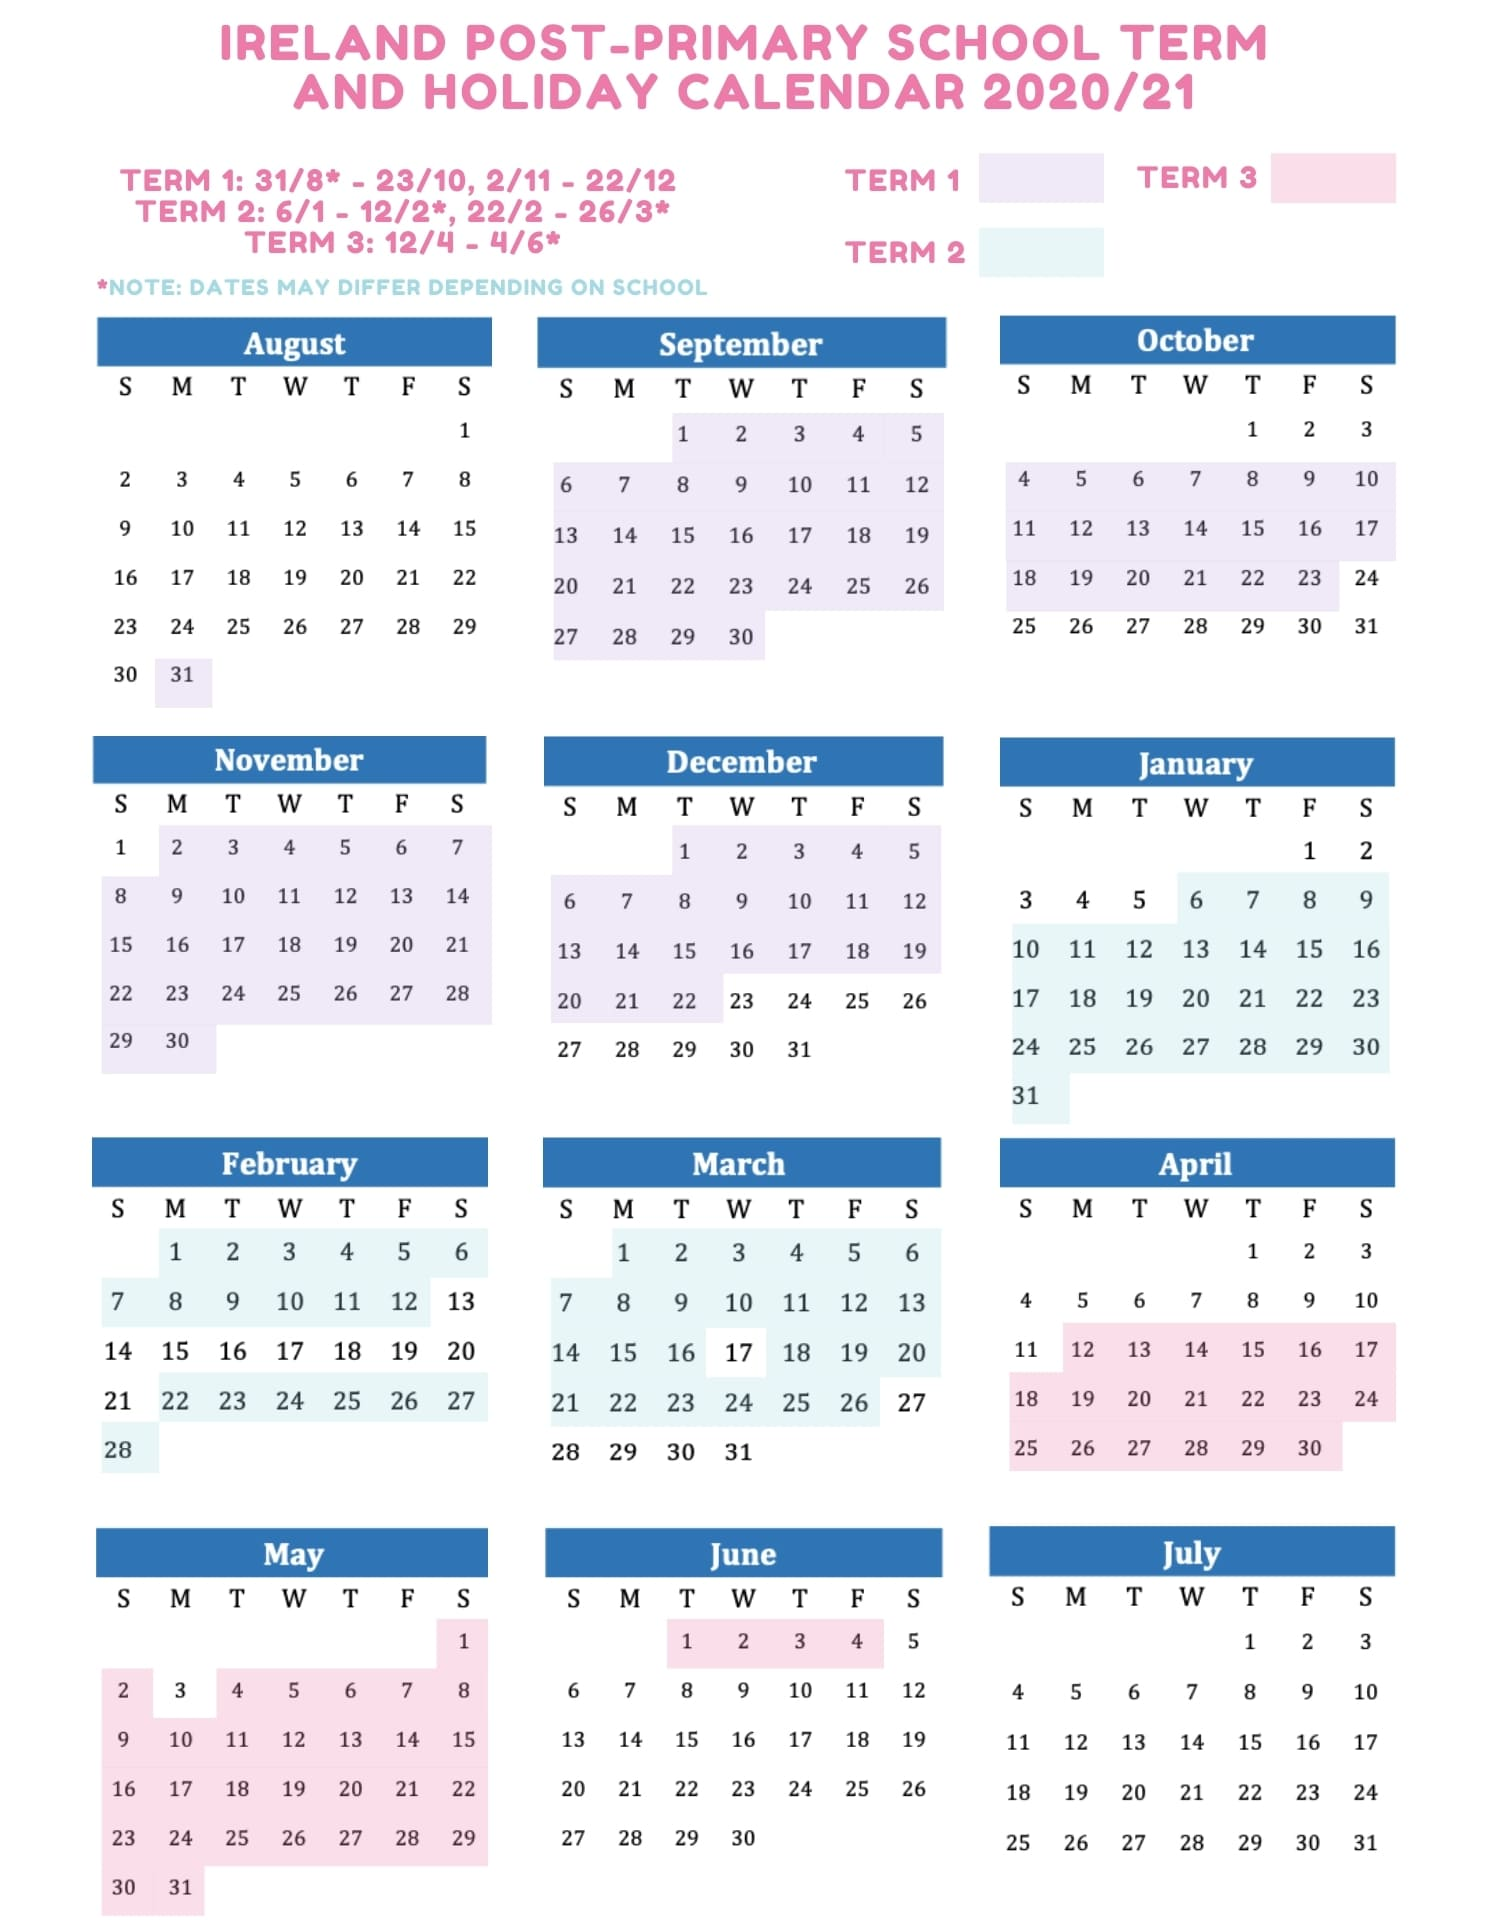 IE post-primary school term and holiday calendar 2020 2021